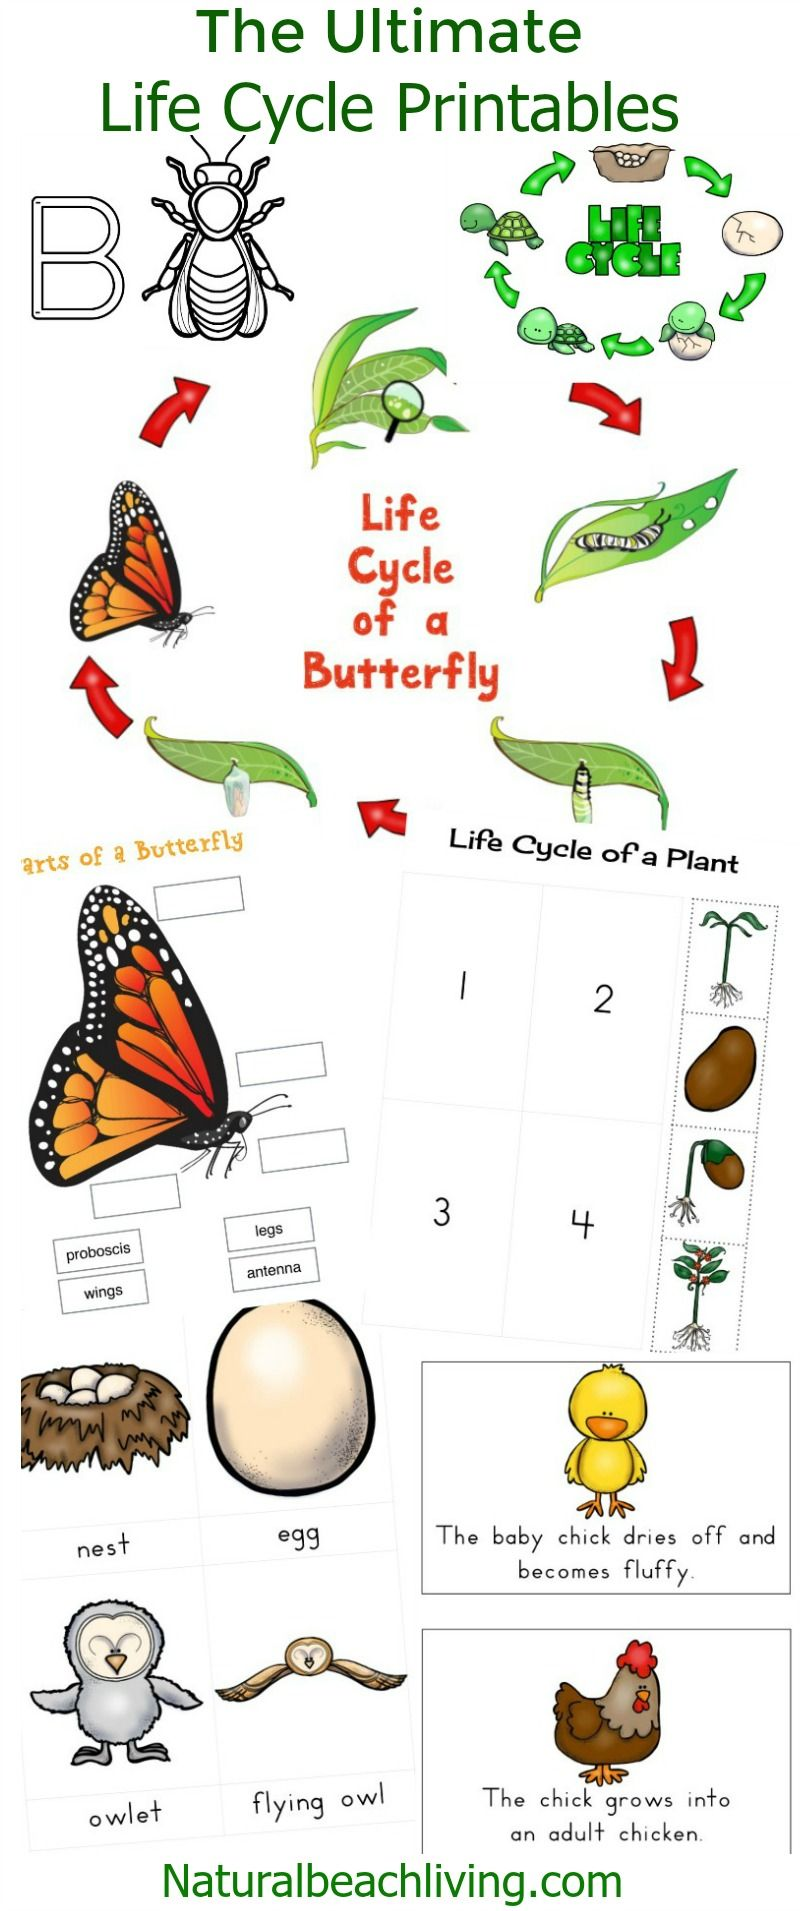 the ultimate life cycle printables life cycles animal habitats the ultimate life cycle printables for preschoolers and kindergarten butterfly life cycle frogs